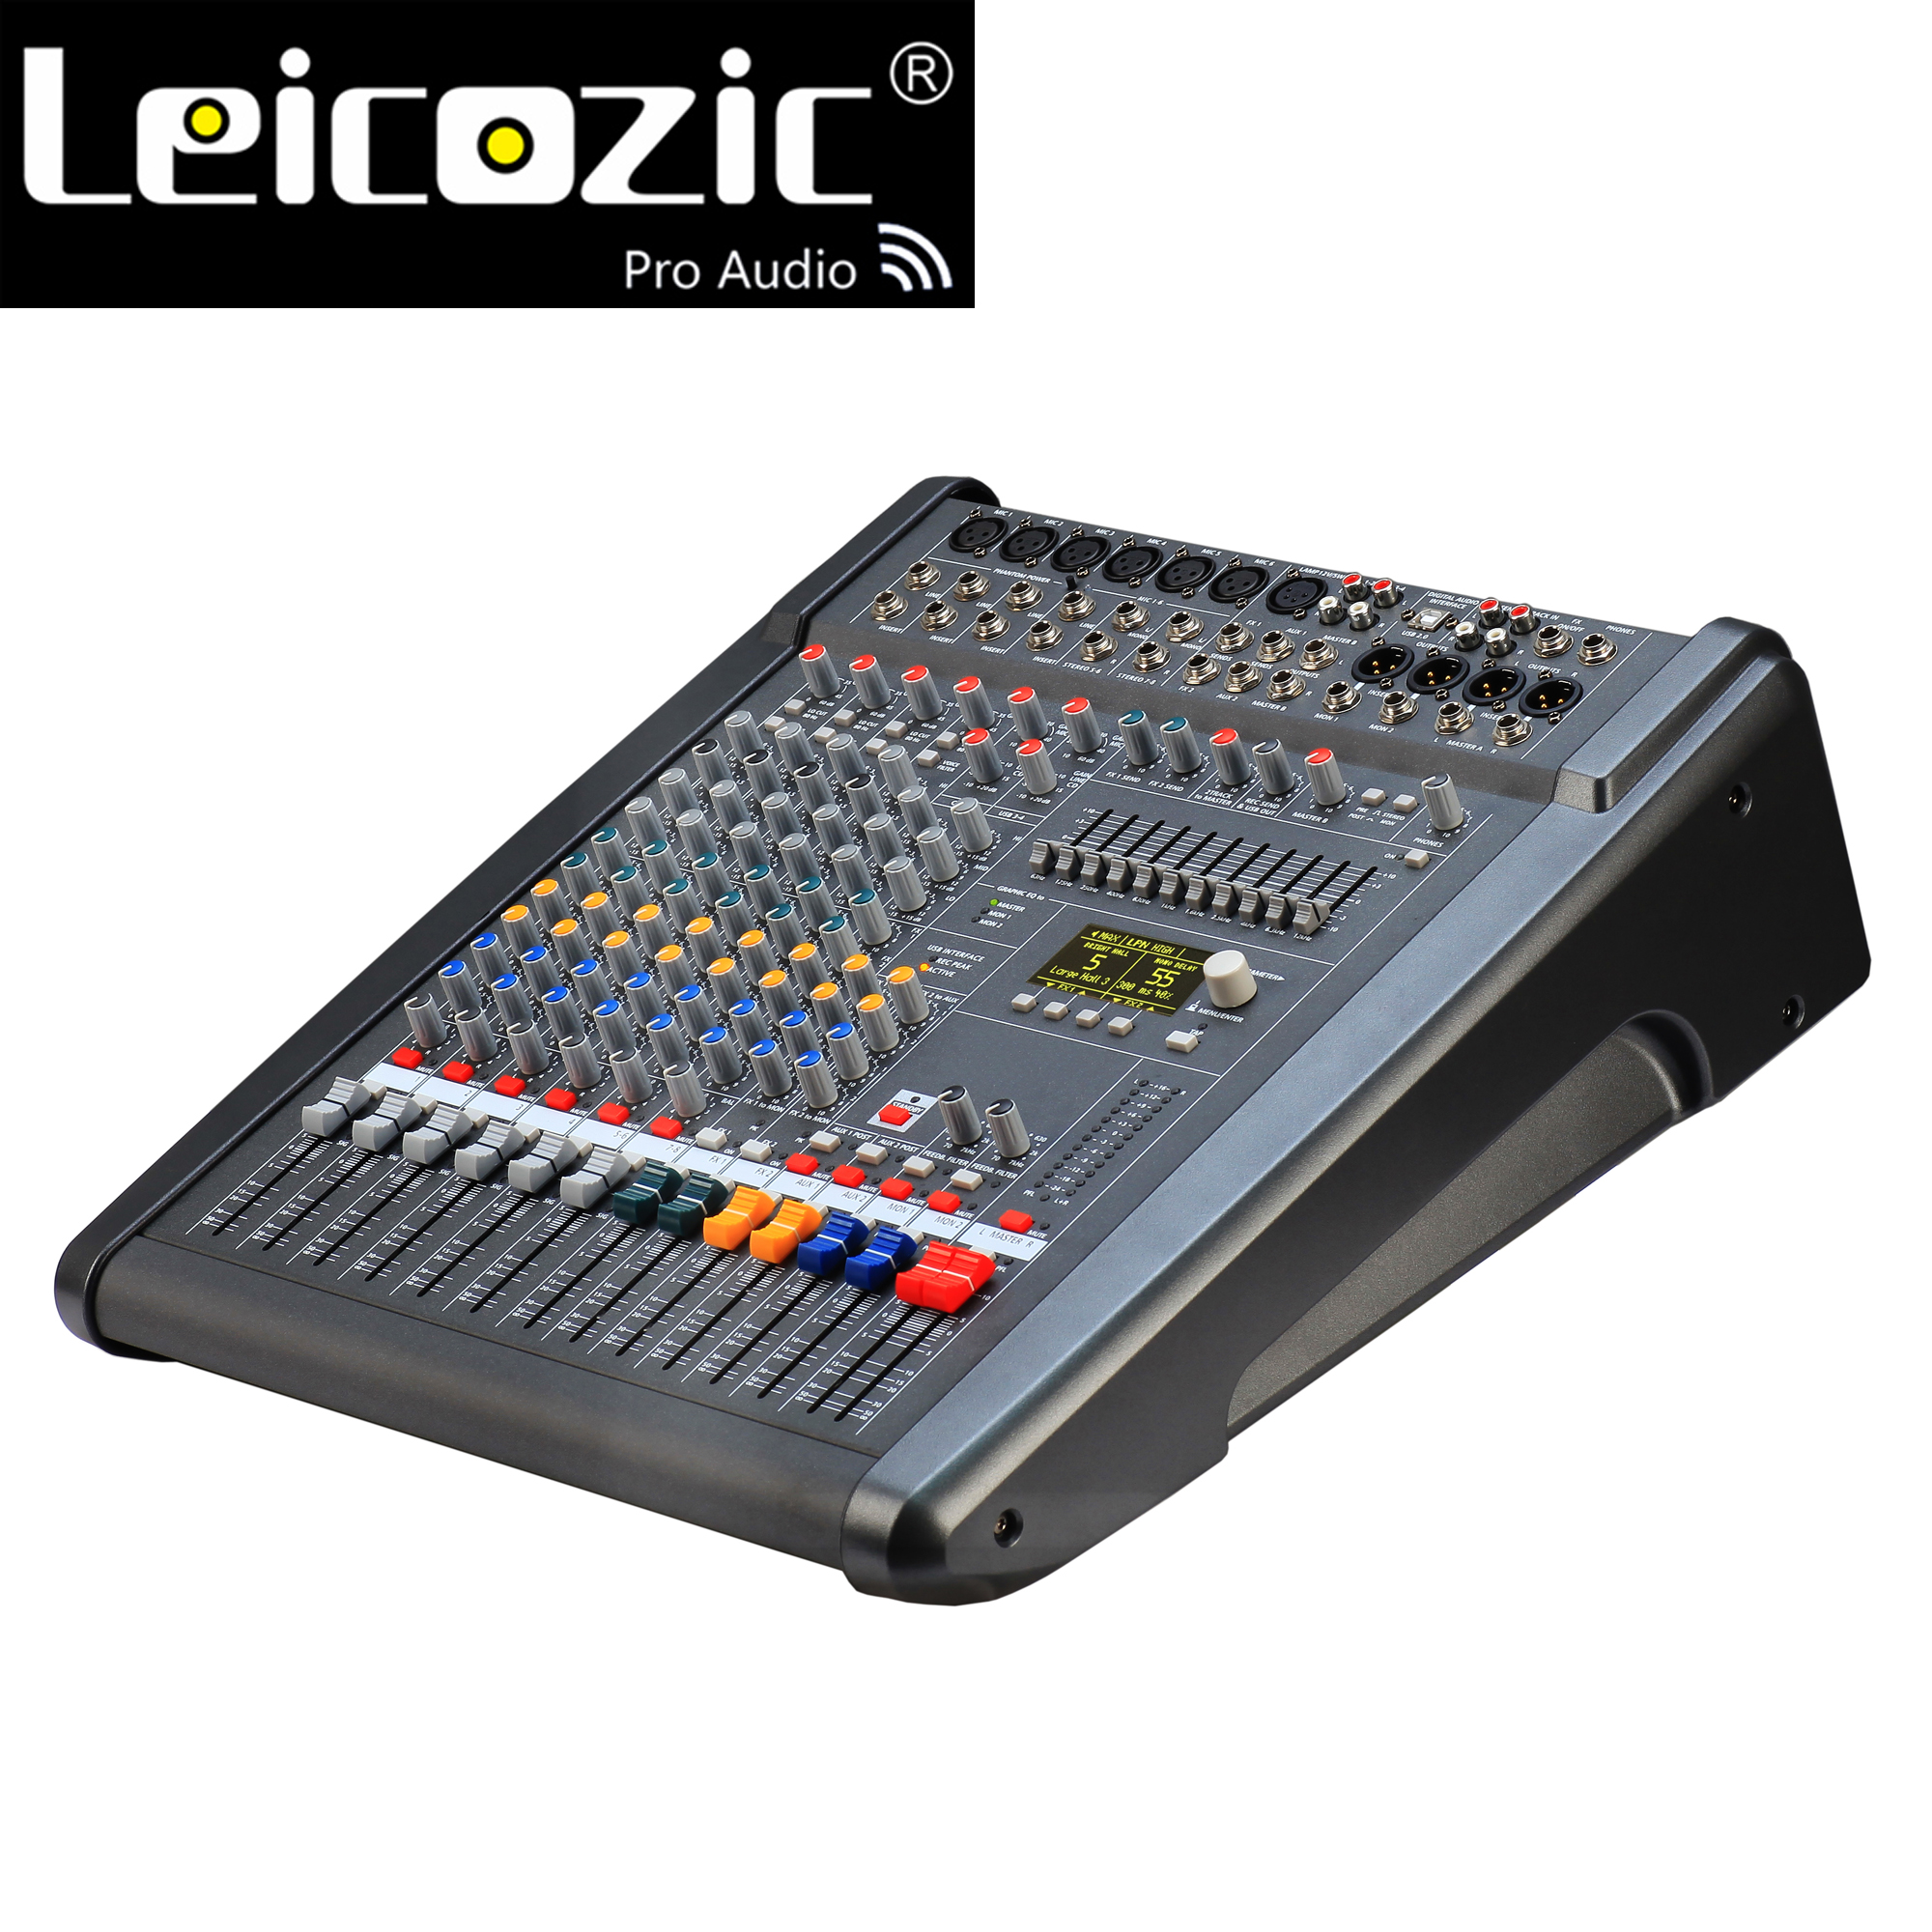 Leicozic PM600-3 Powered Mixer Konsole 1000W * 2 4OHM Powered Audio Mixer Professionelle 8-Kanal Mischpult powermate